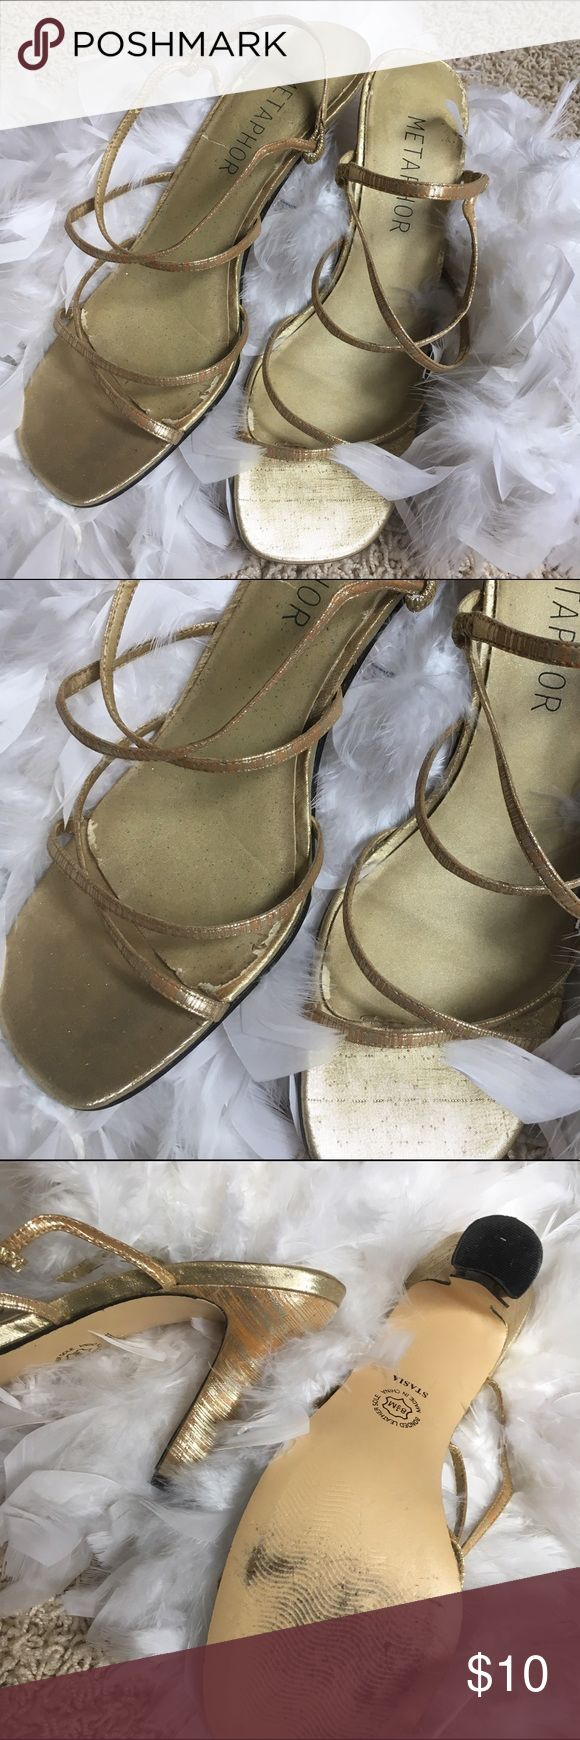 """VINTAGE Metaphor Gold Open Toe Heels Vintage. Some outter wear for its age. Size 8.5m. Bonded leather sole. Good condition with vintage wear. Heel is 3.5"""" high. Metaphor Shoes Heels"""